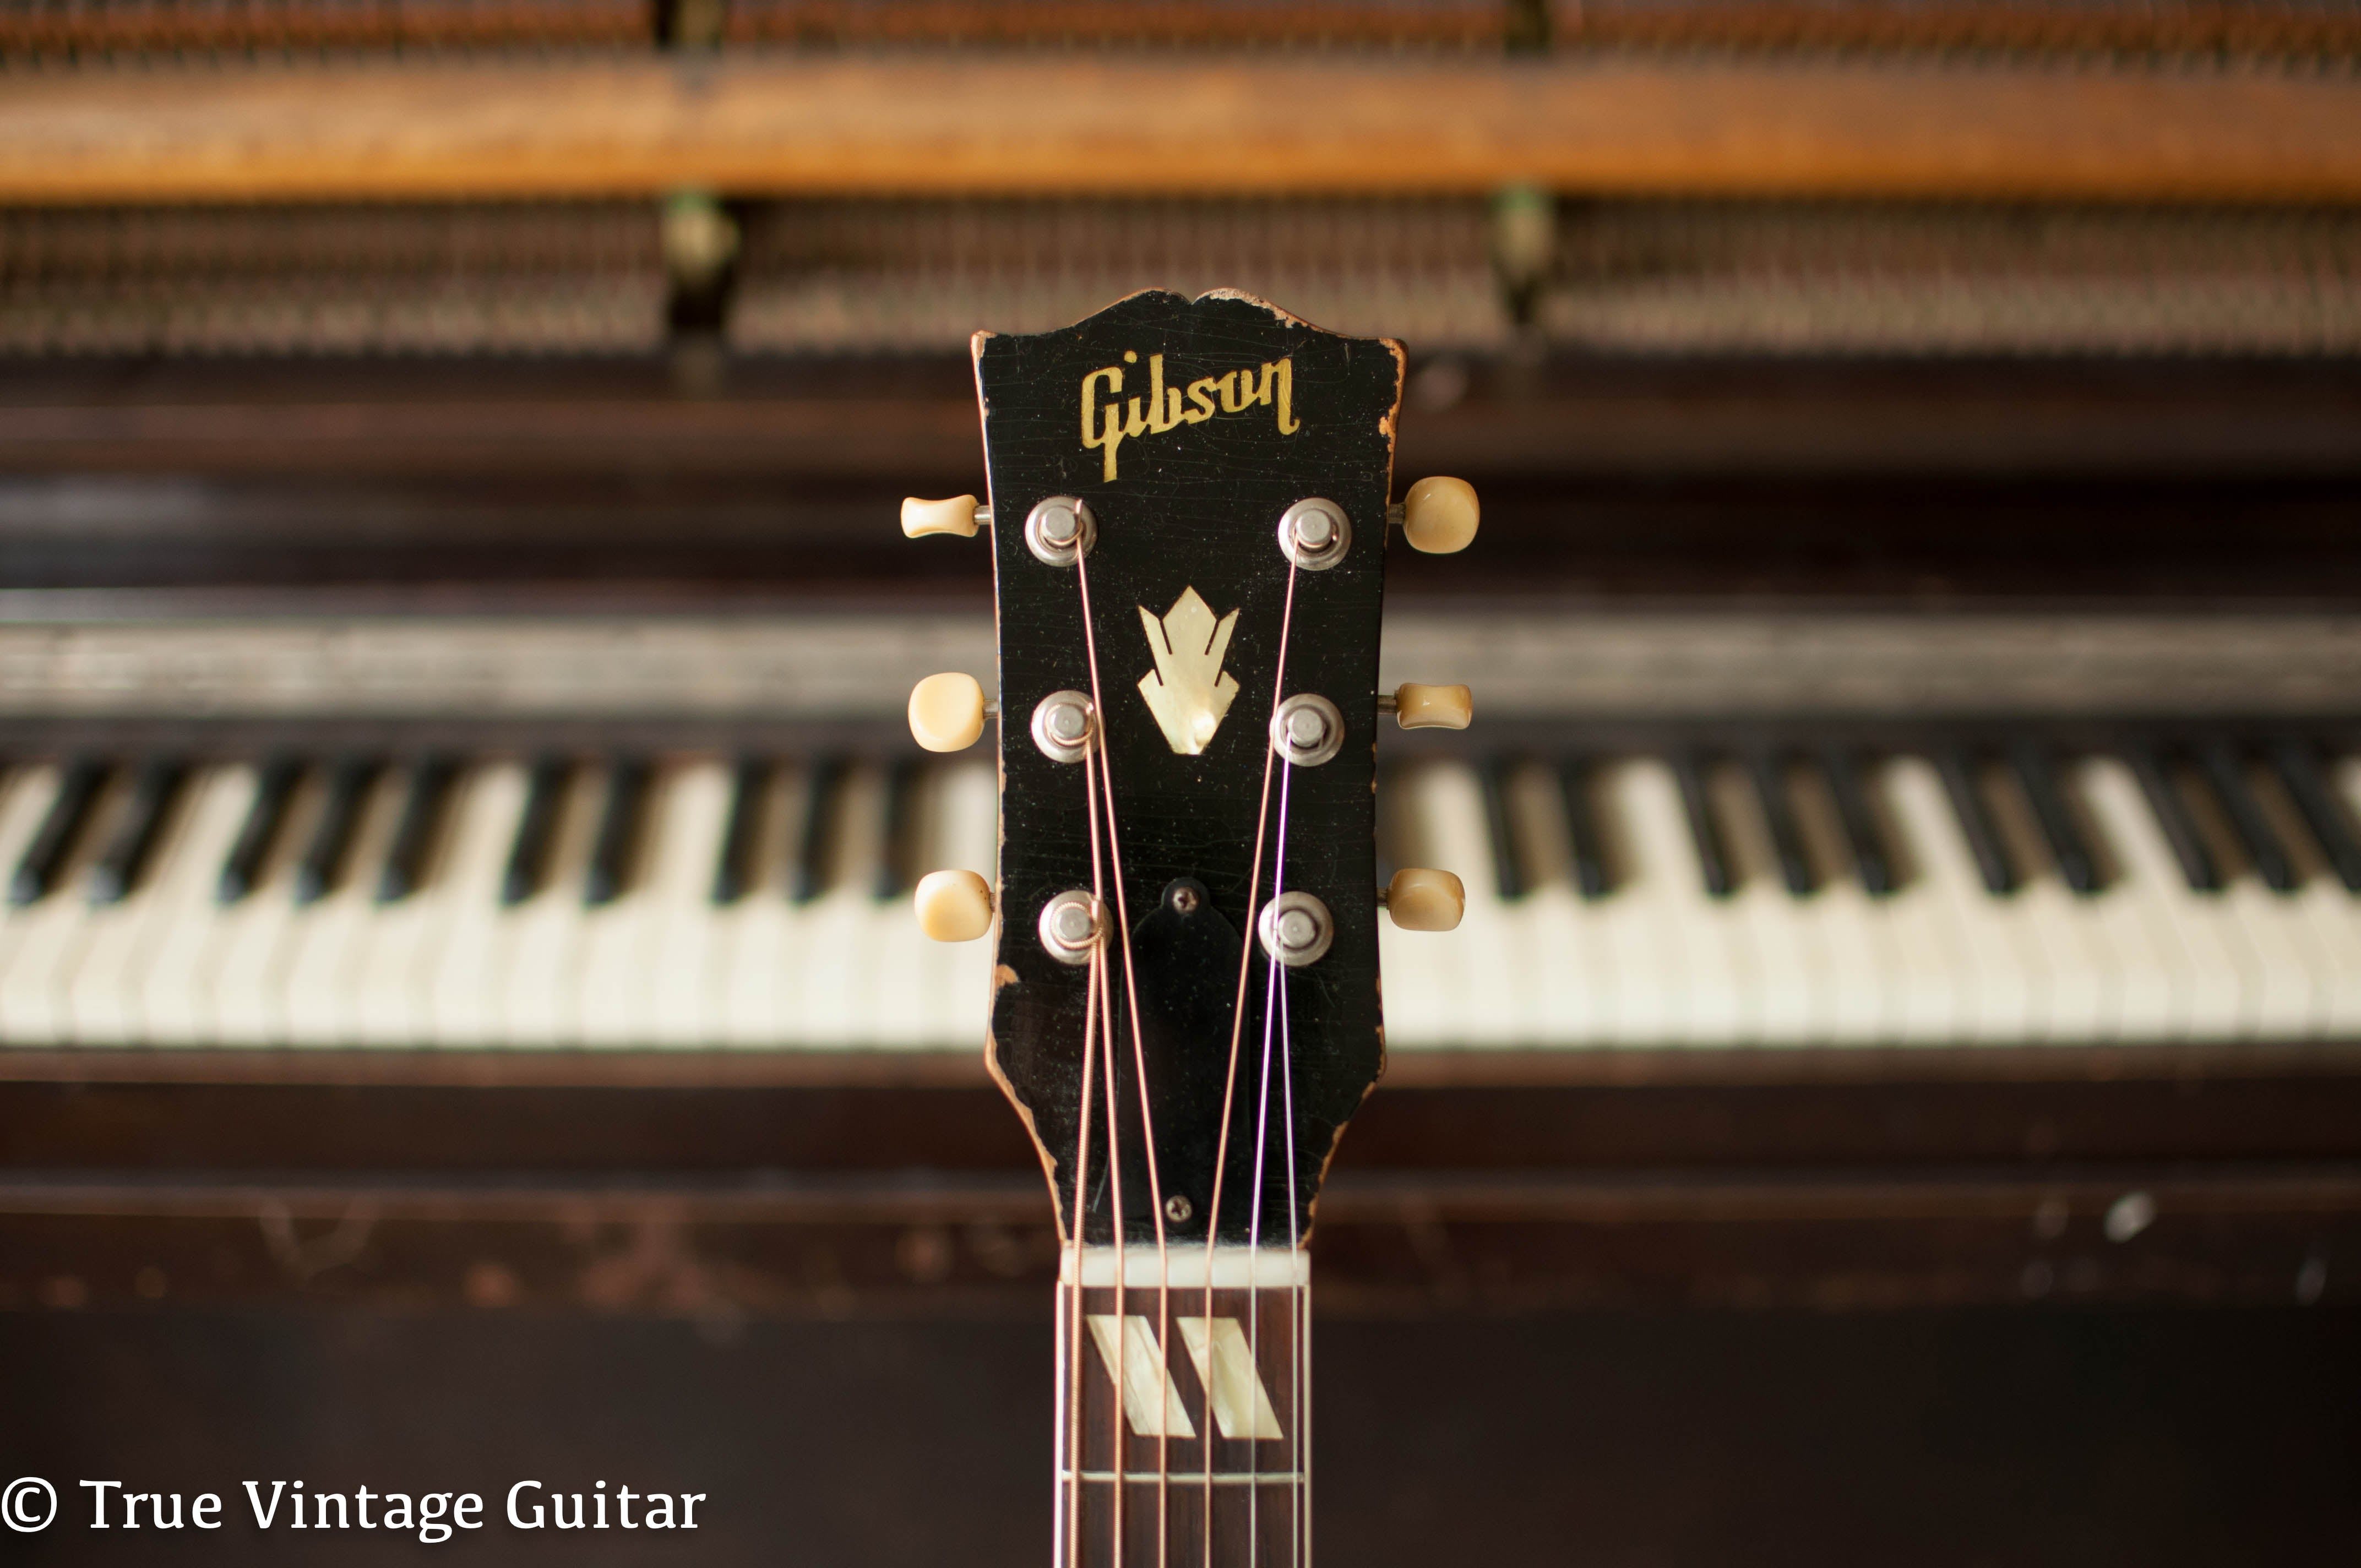 1950s Gibson headstock, pearl Gibson inlay, 1950s guitar